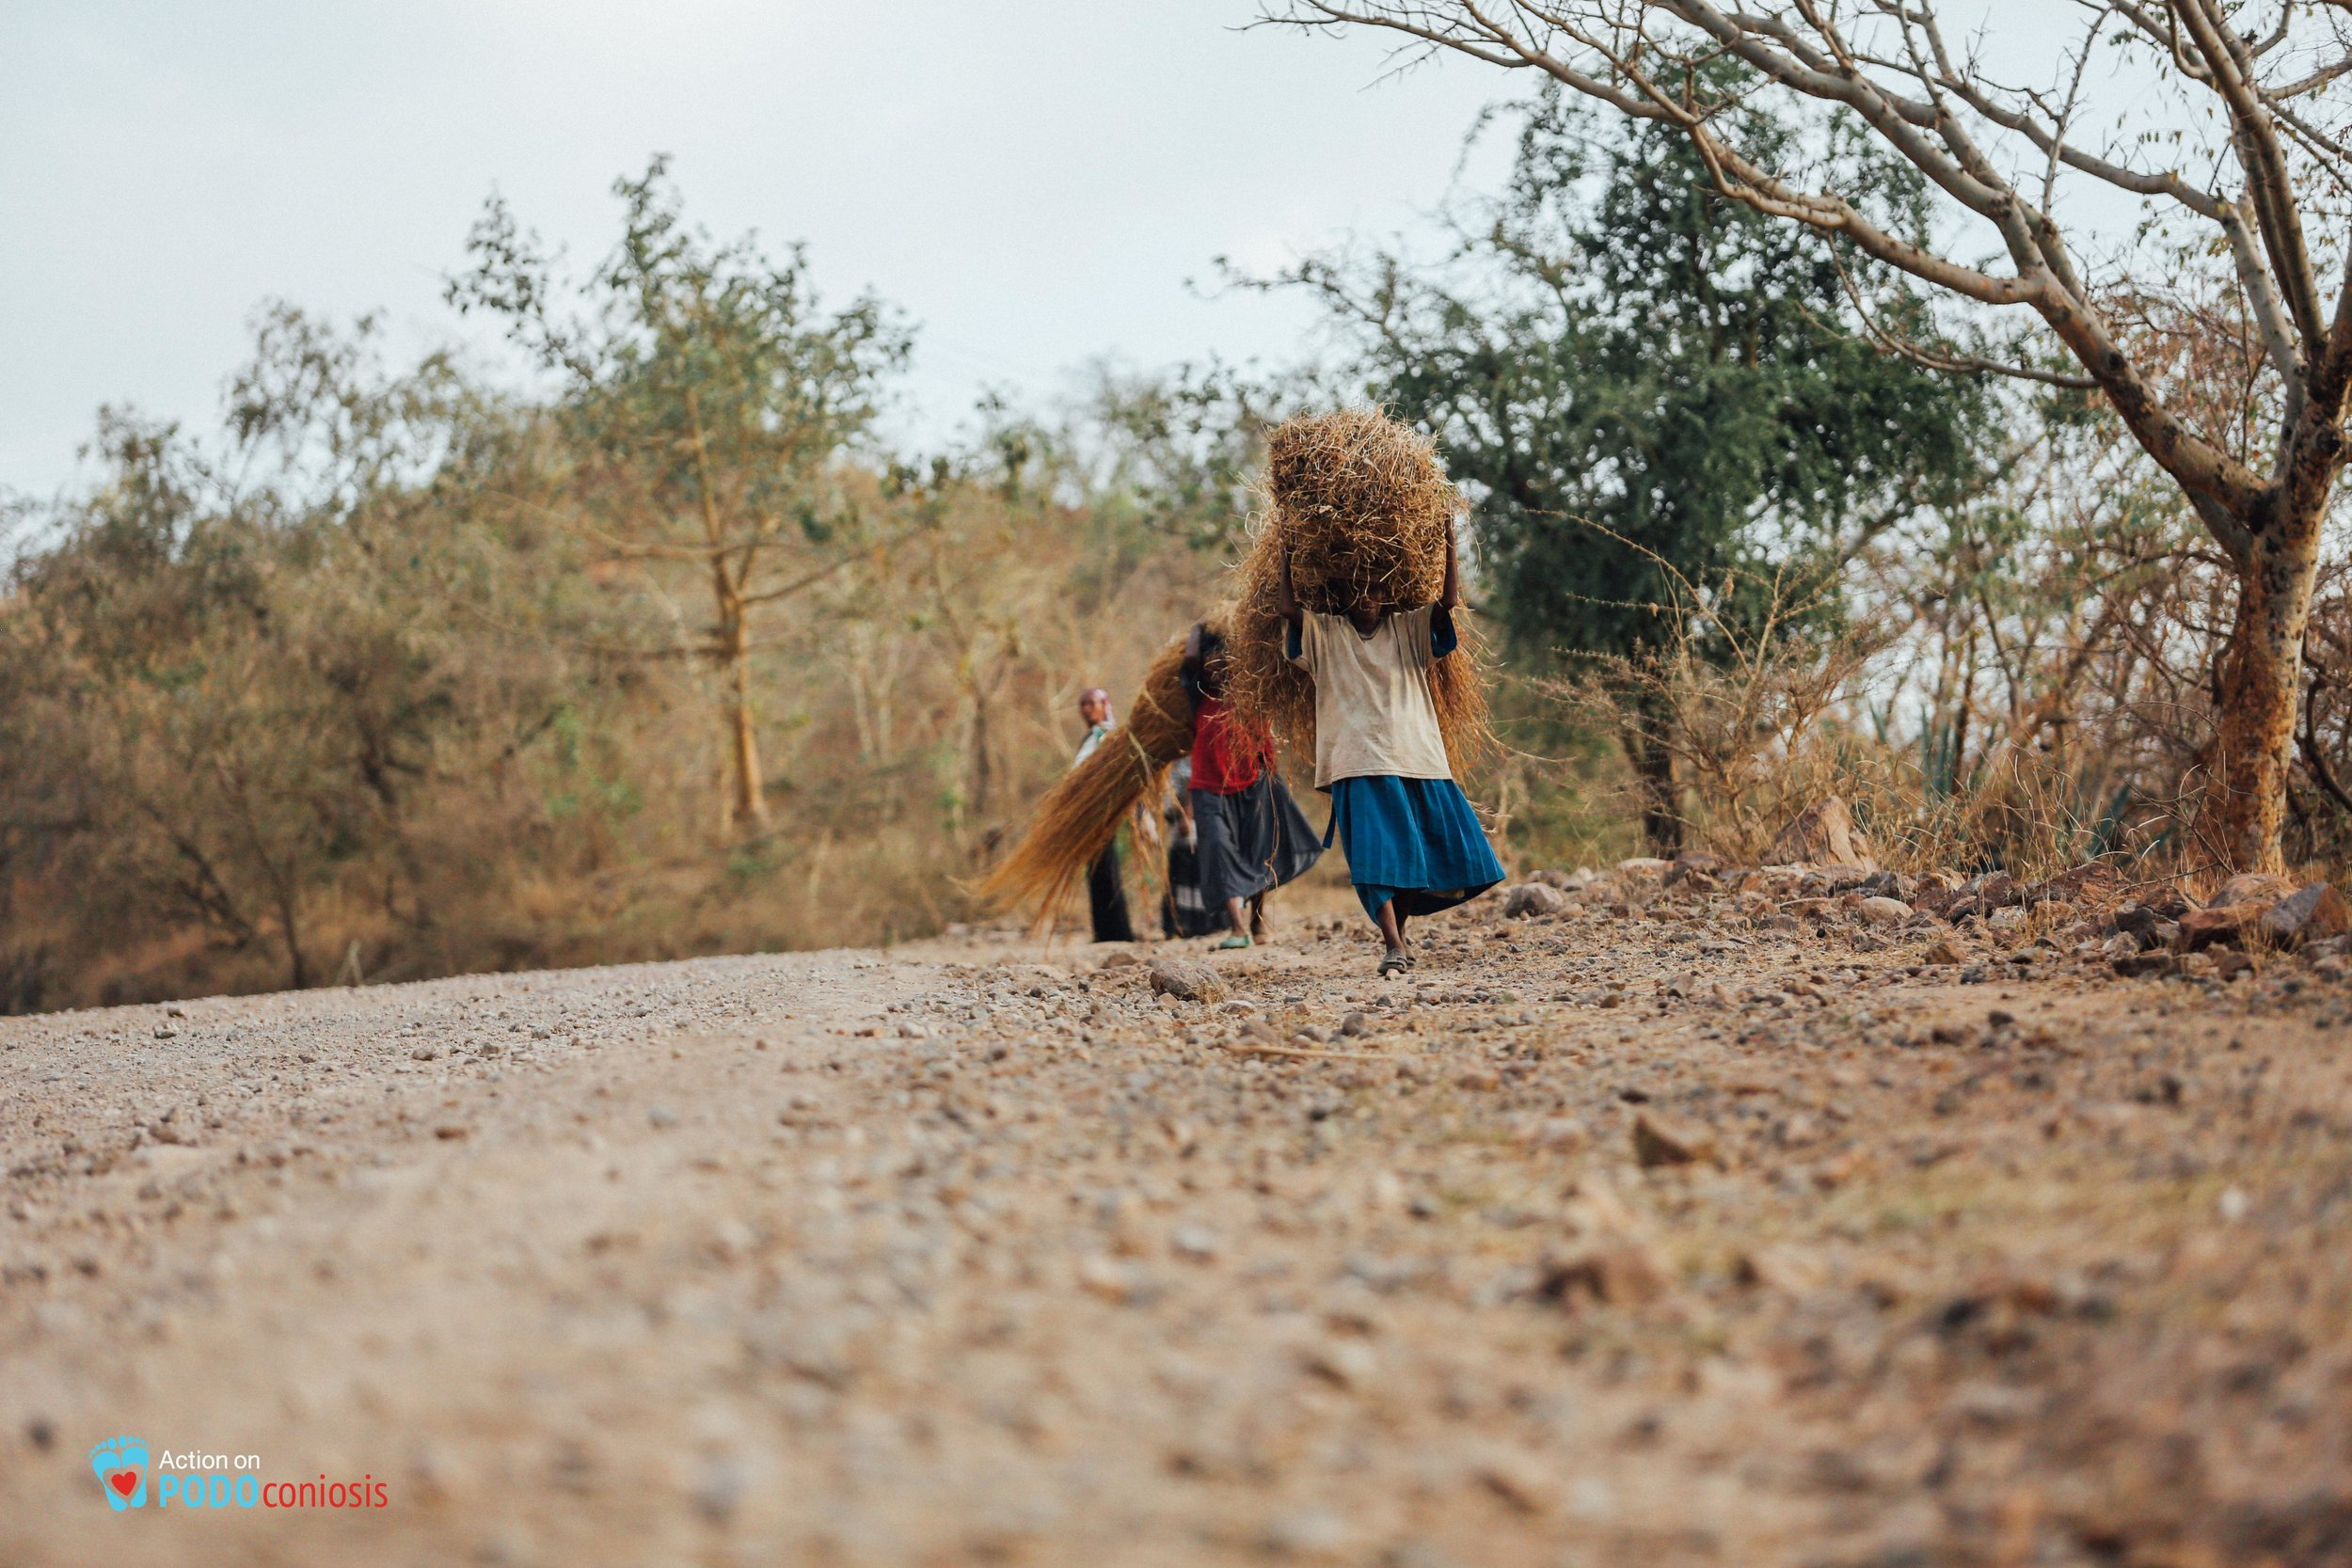 Two elderly women struggle up hill daily on dirt roads, covering long distances to collect grass.